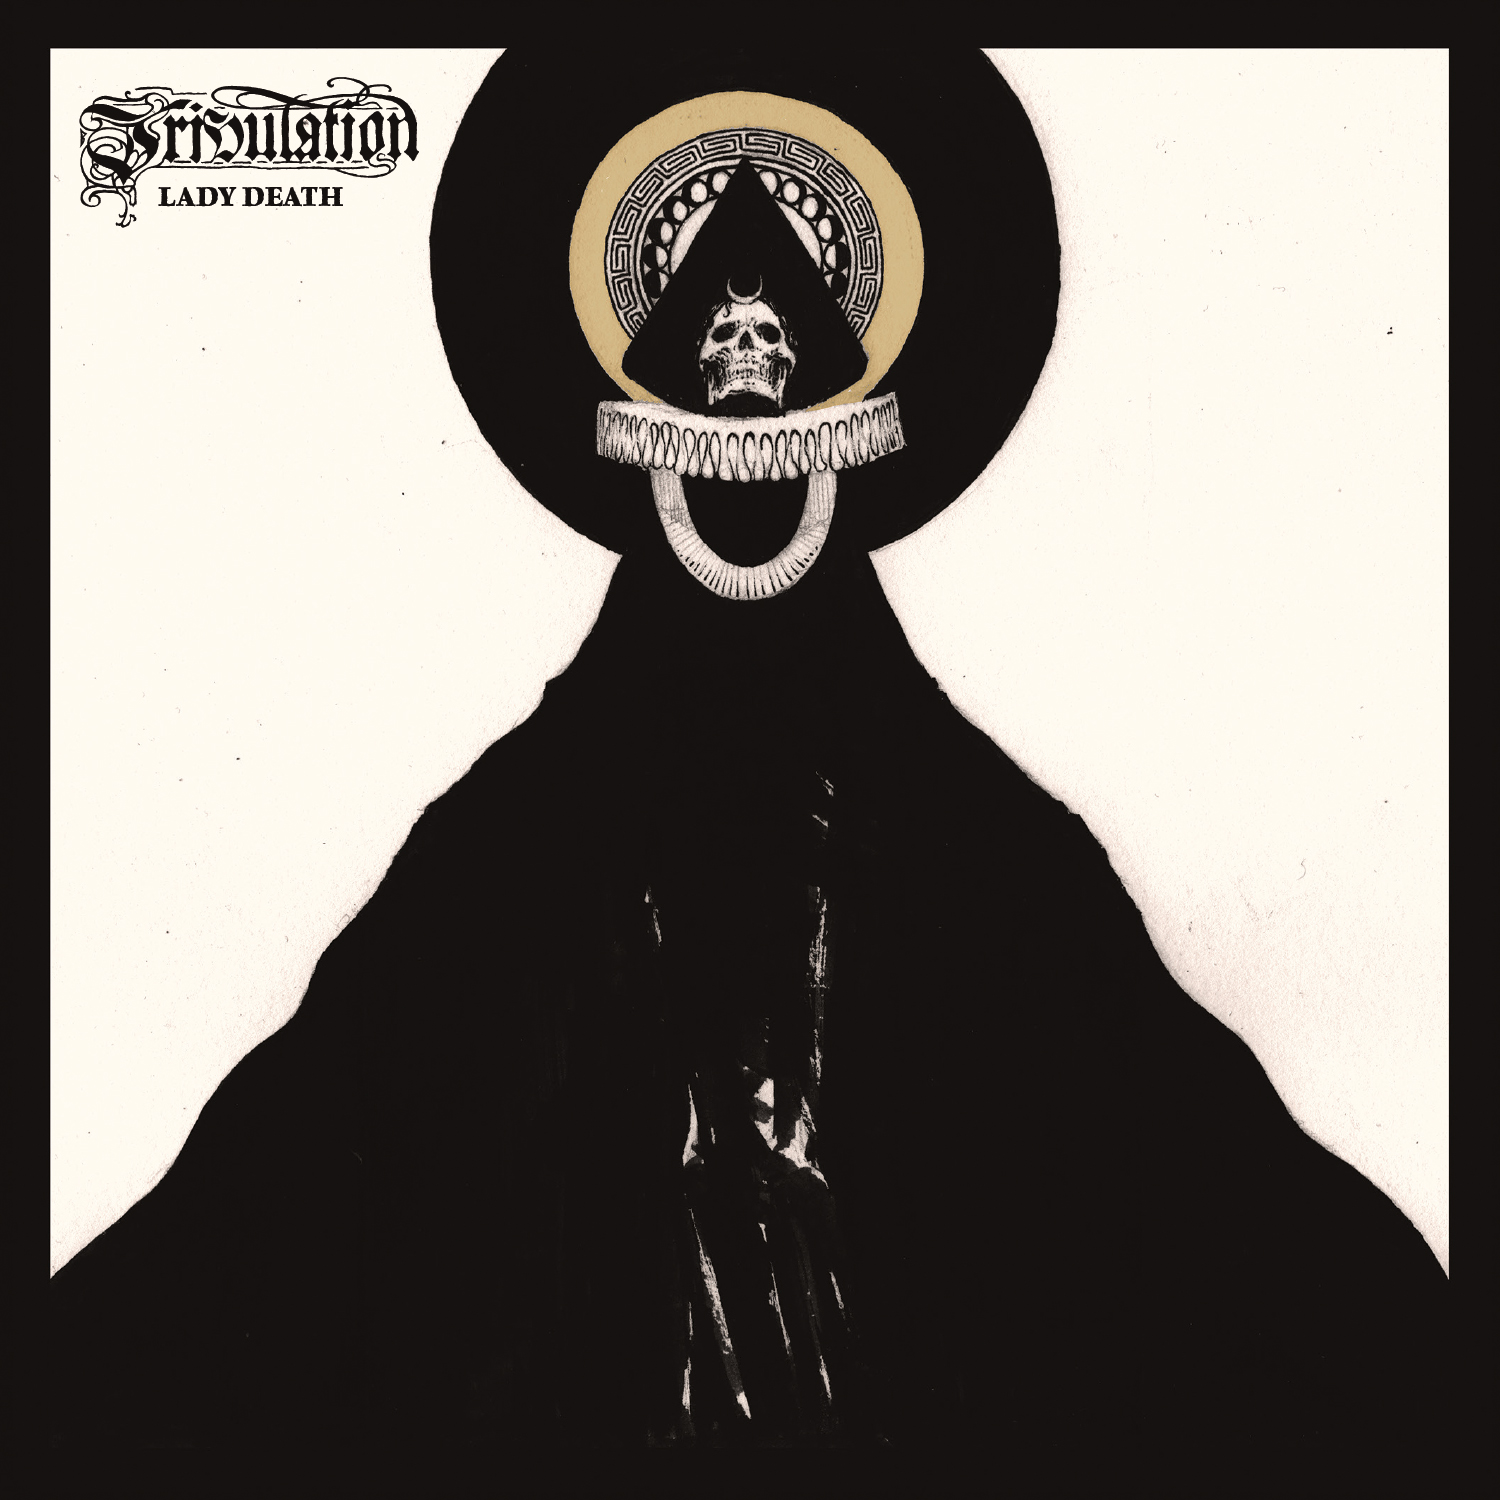 Tribulation-LadyDeath-7inch.jpg